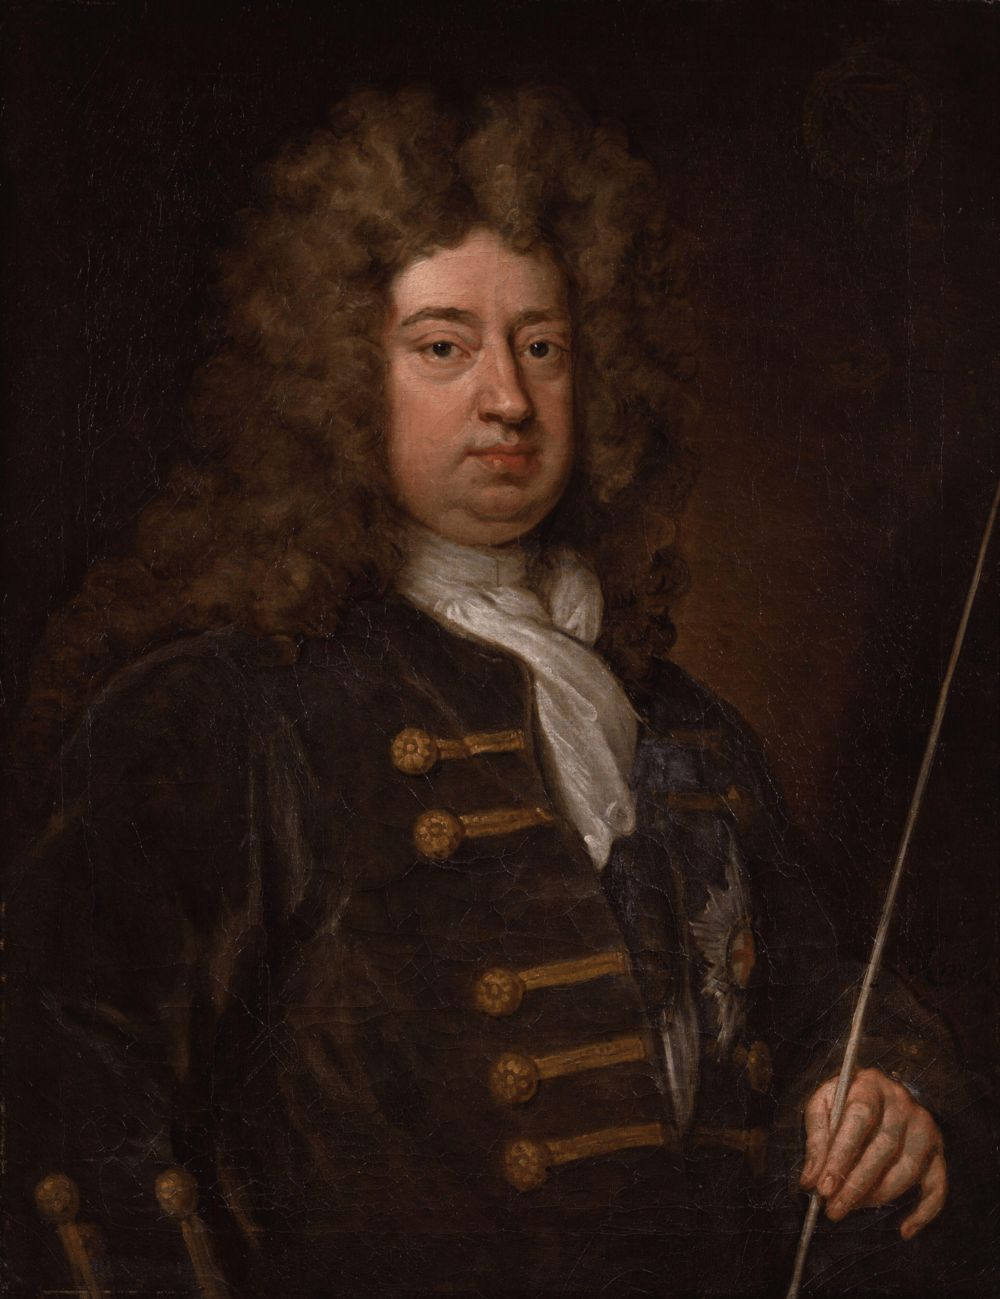 Sackville, 6th Earl of Dorset Charles